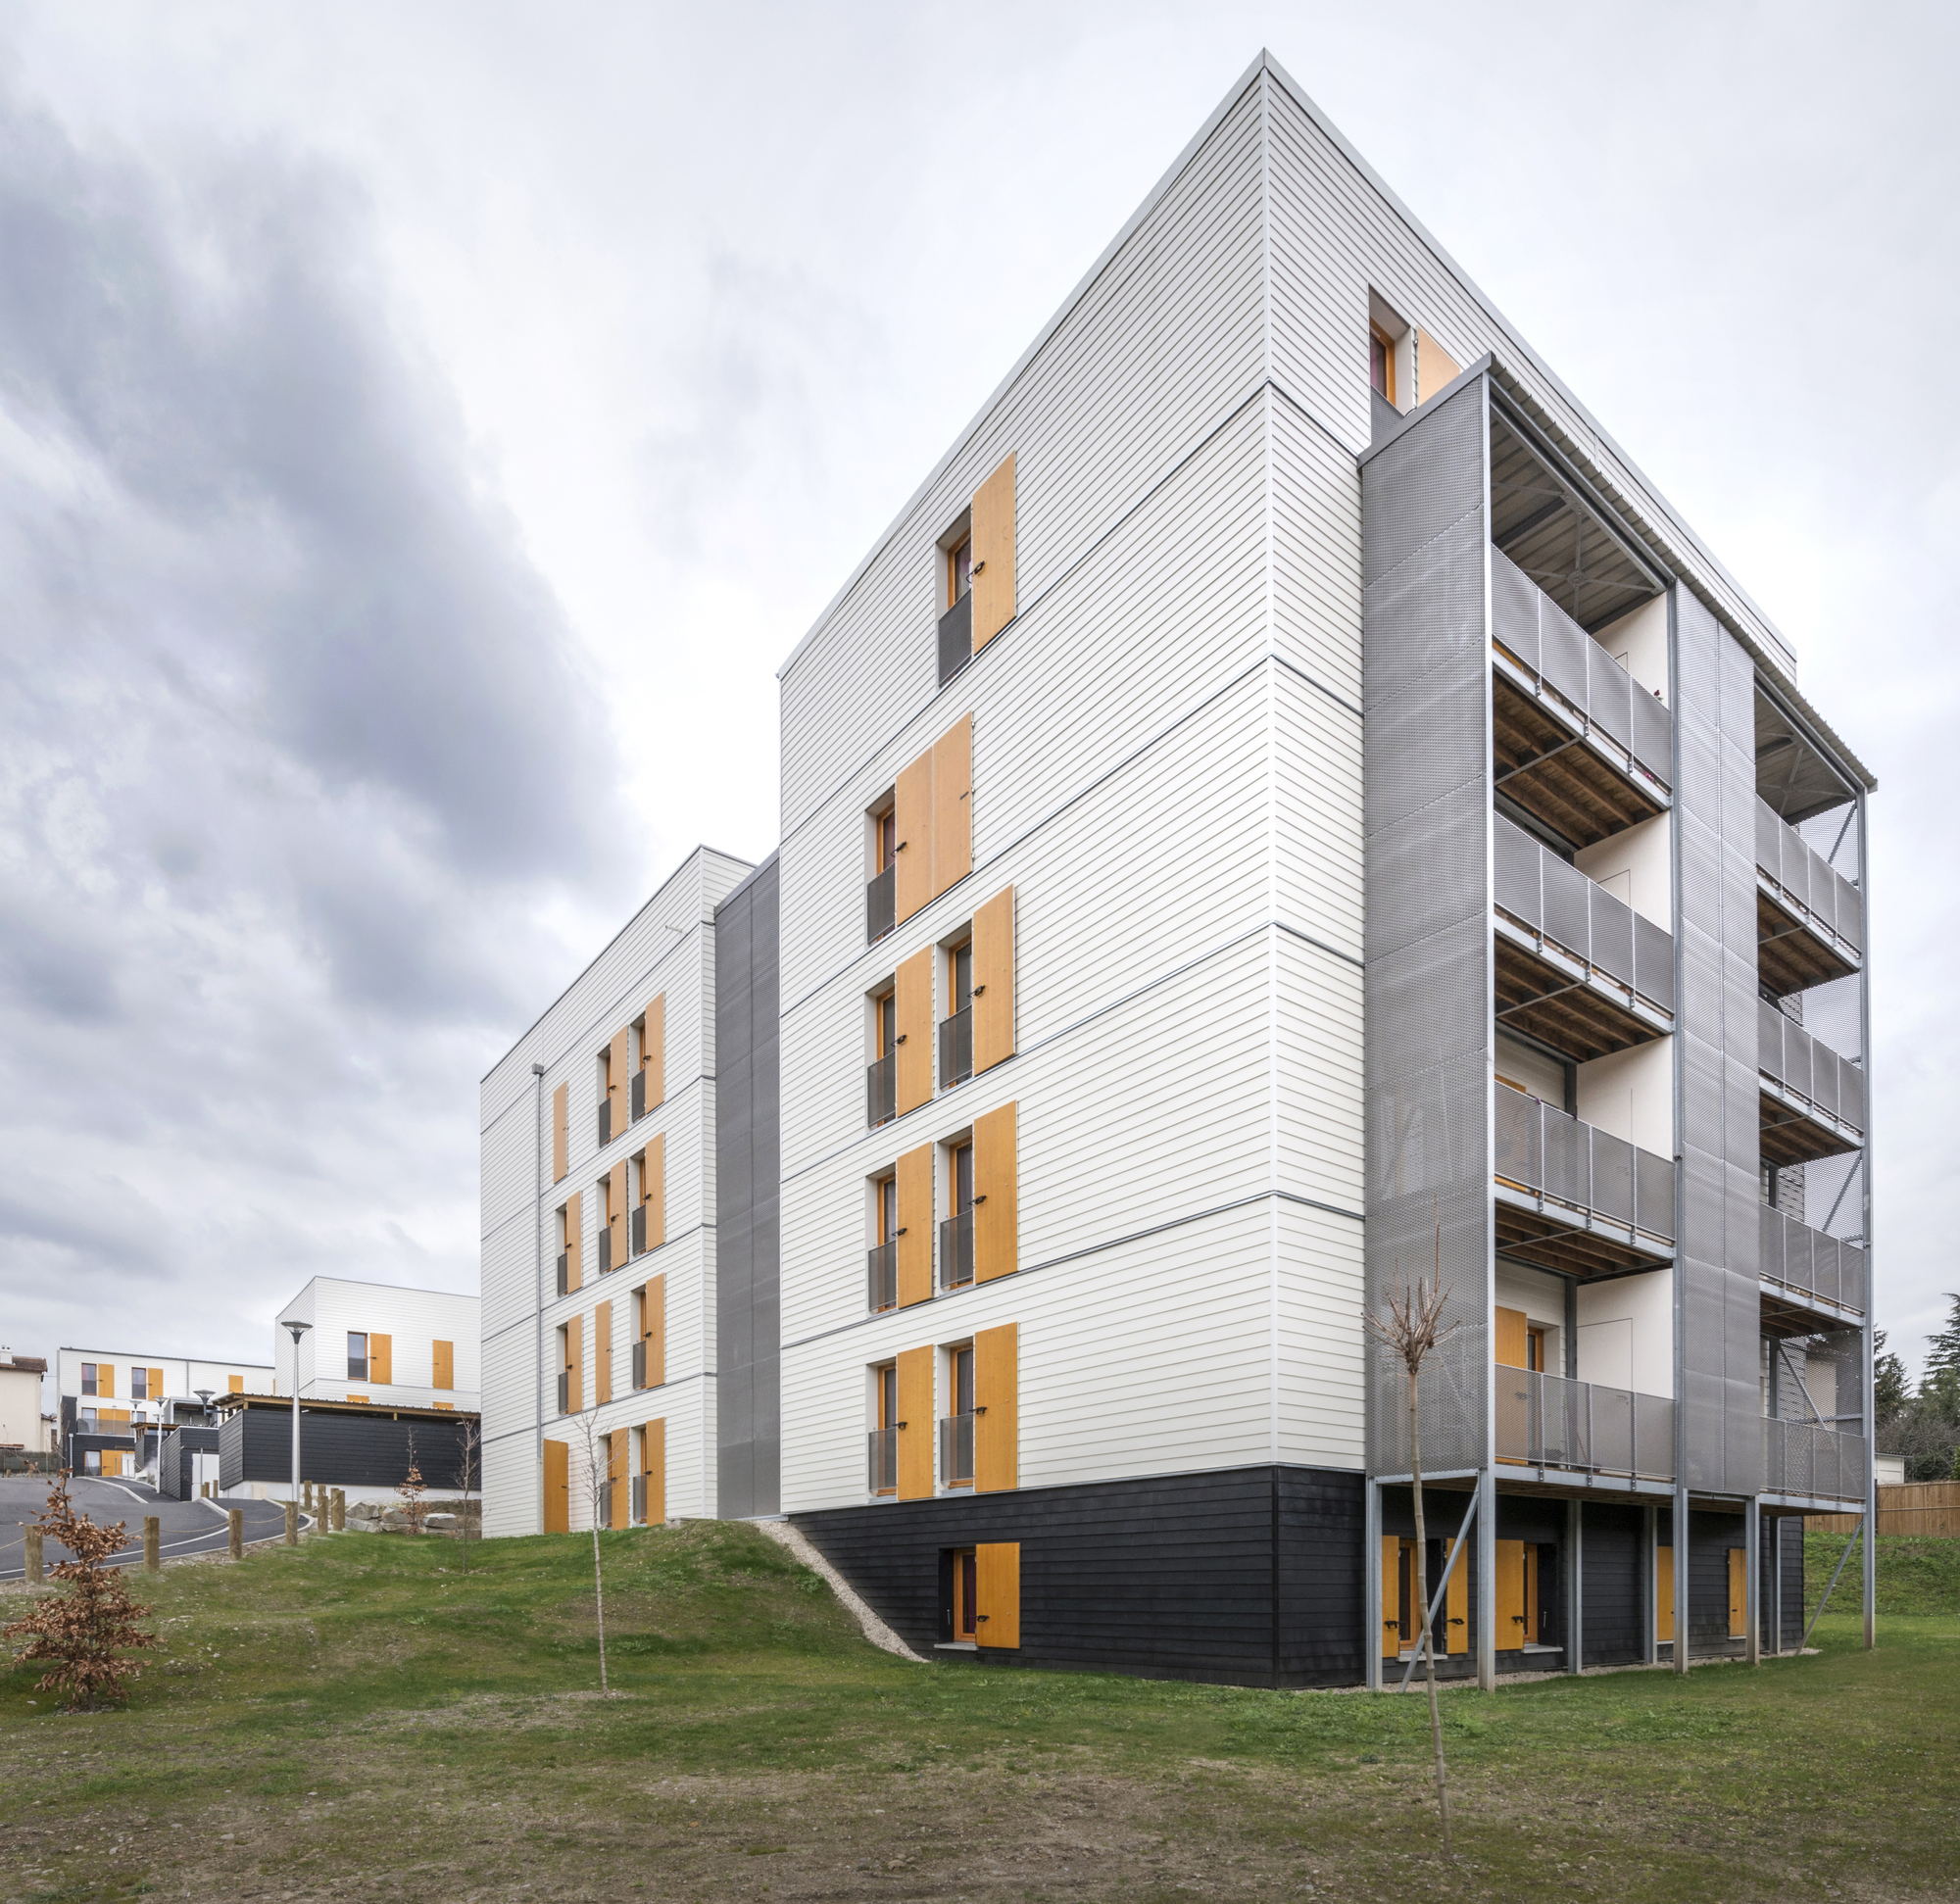 Apartment Flats: 60 Social Housing Apartments In Rive-De-Gier / Tectoniques